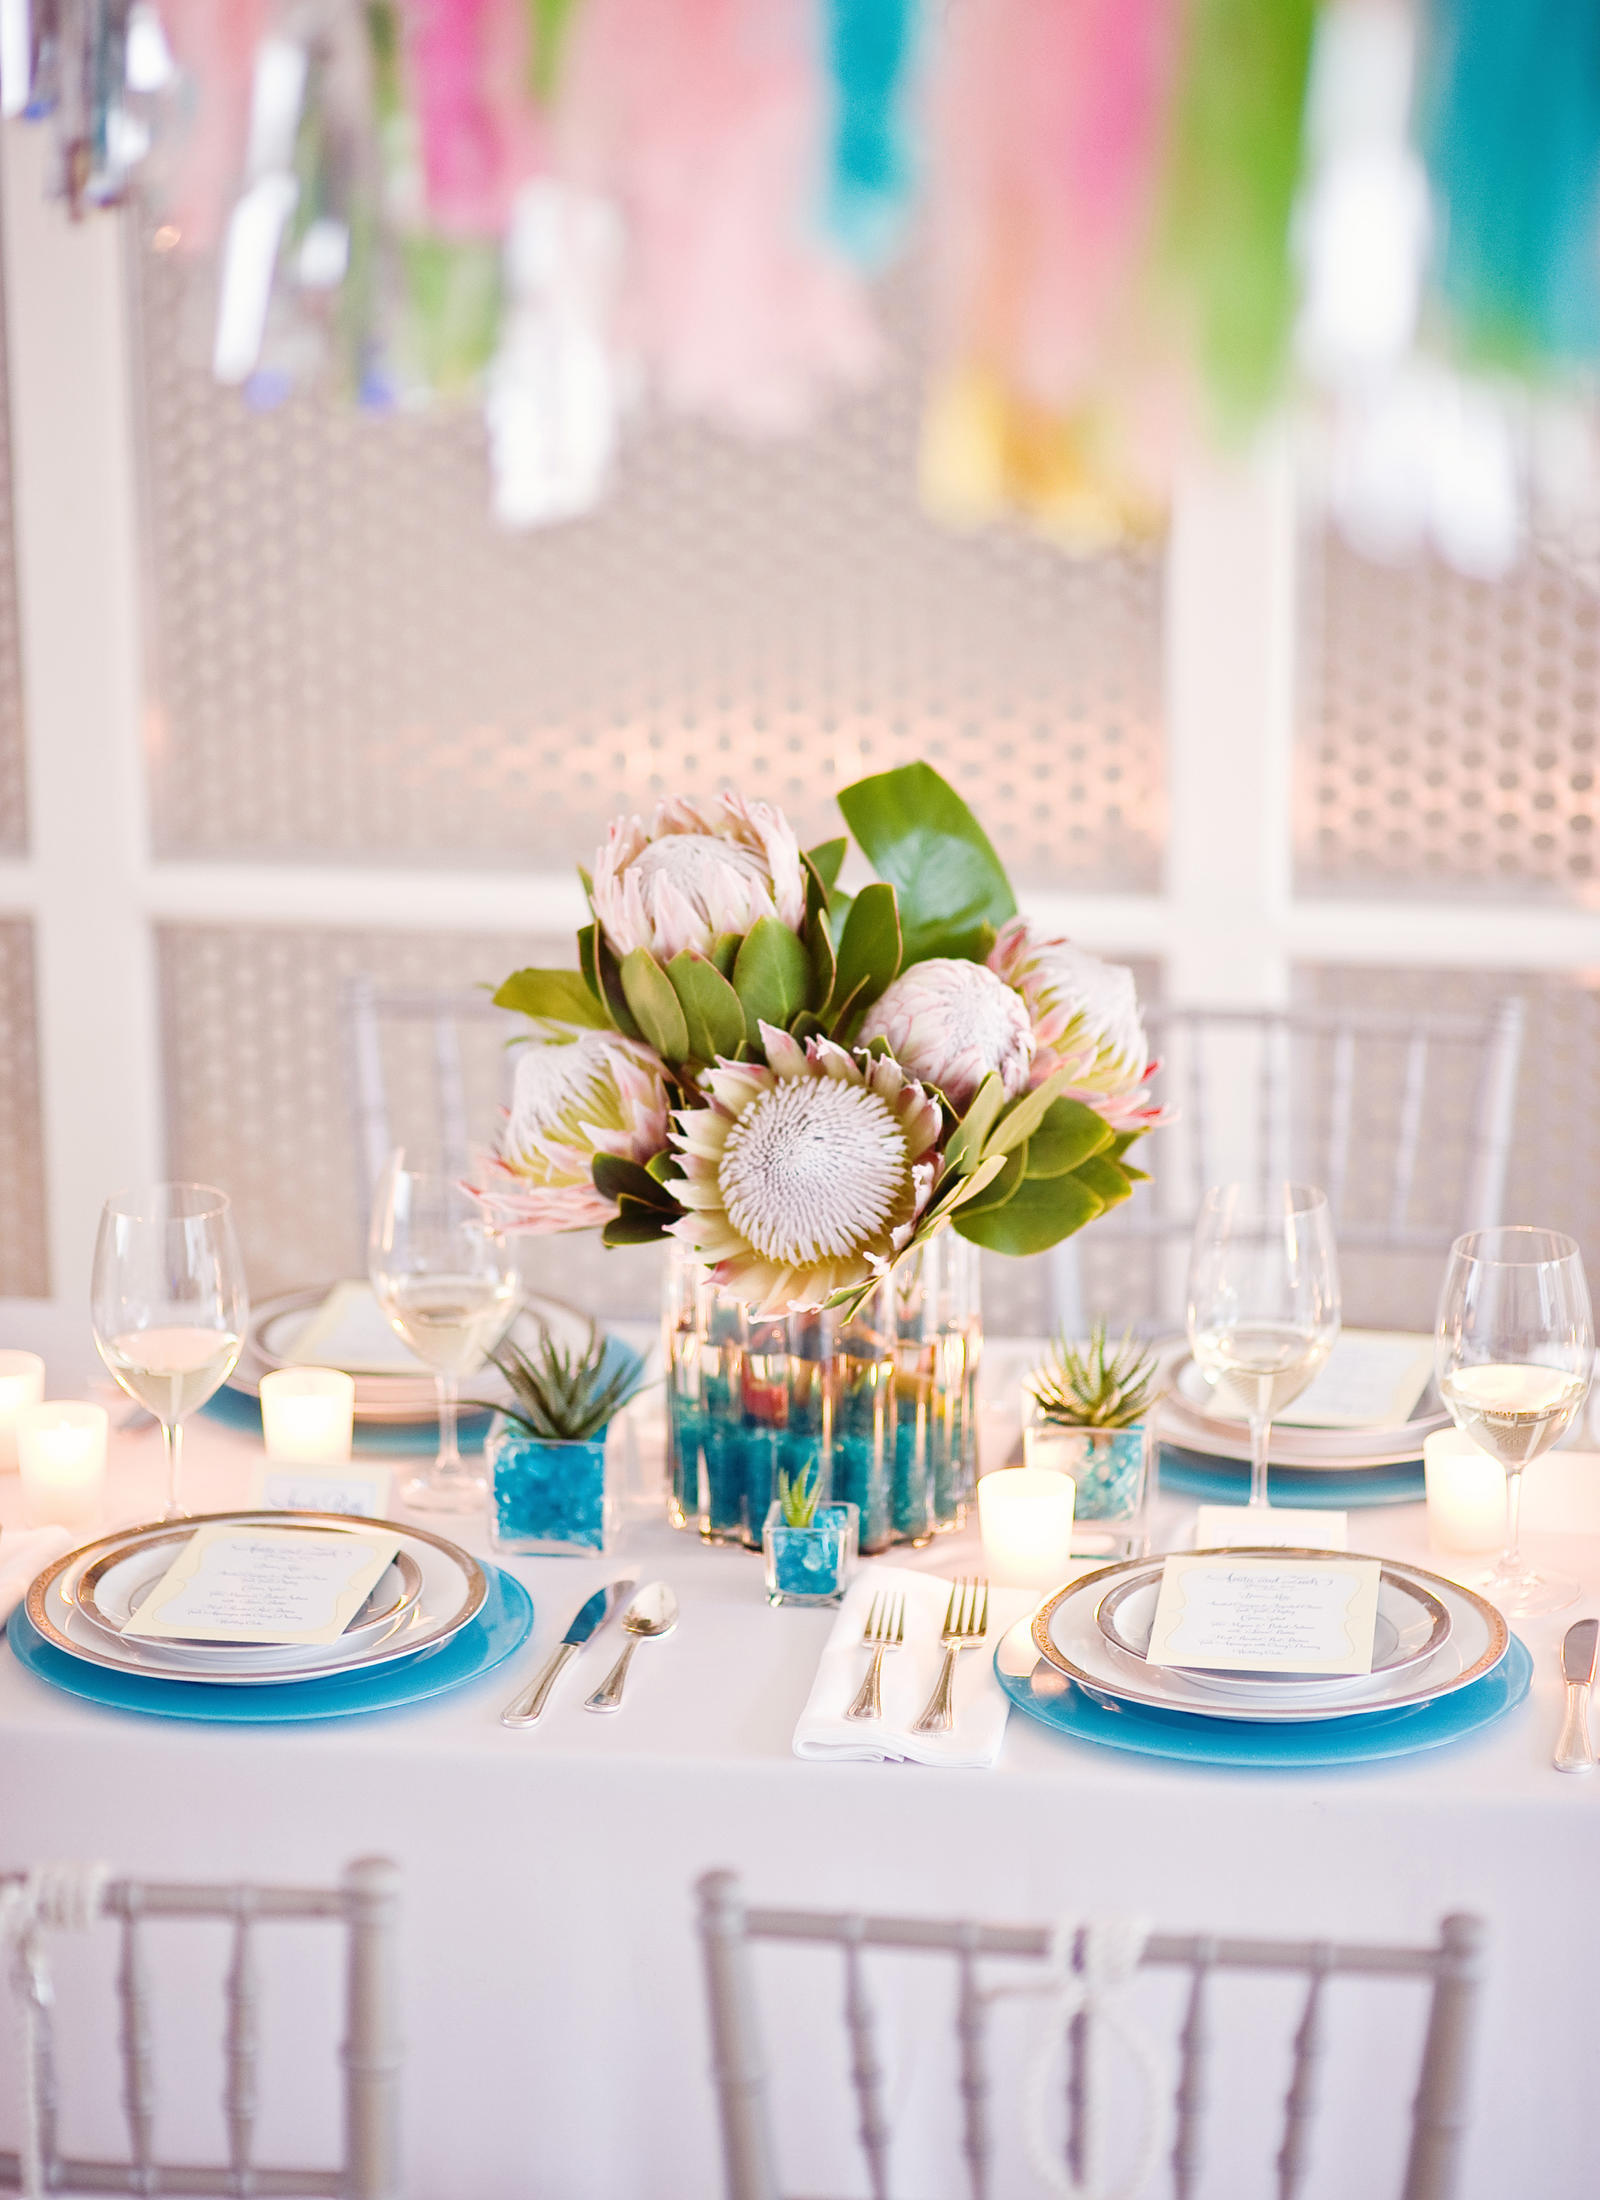 A table set with a tropical centerpiece.